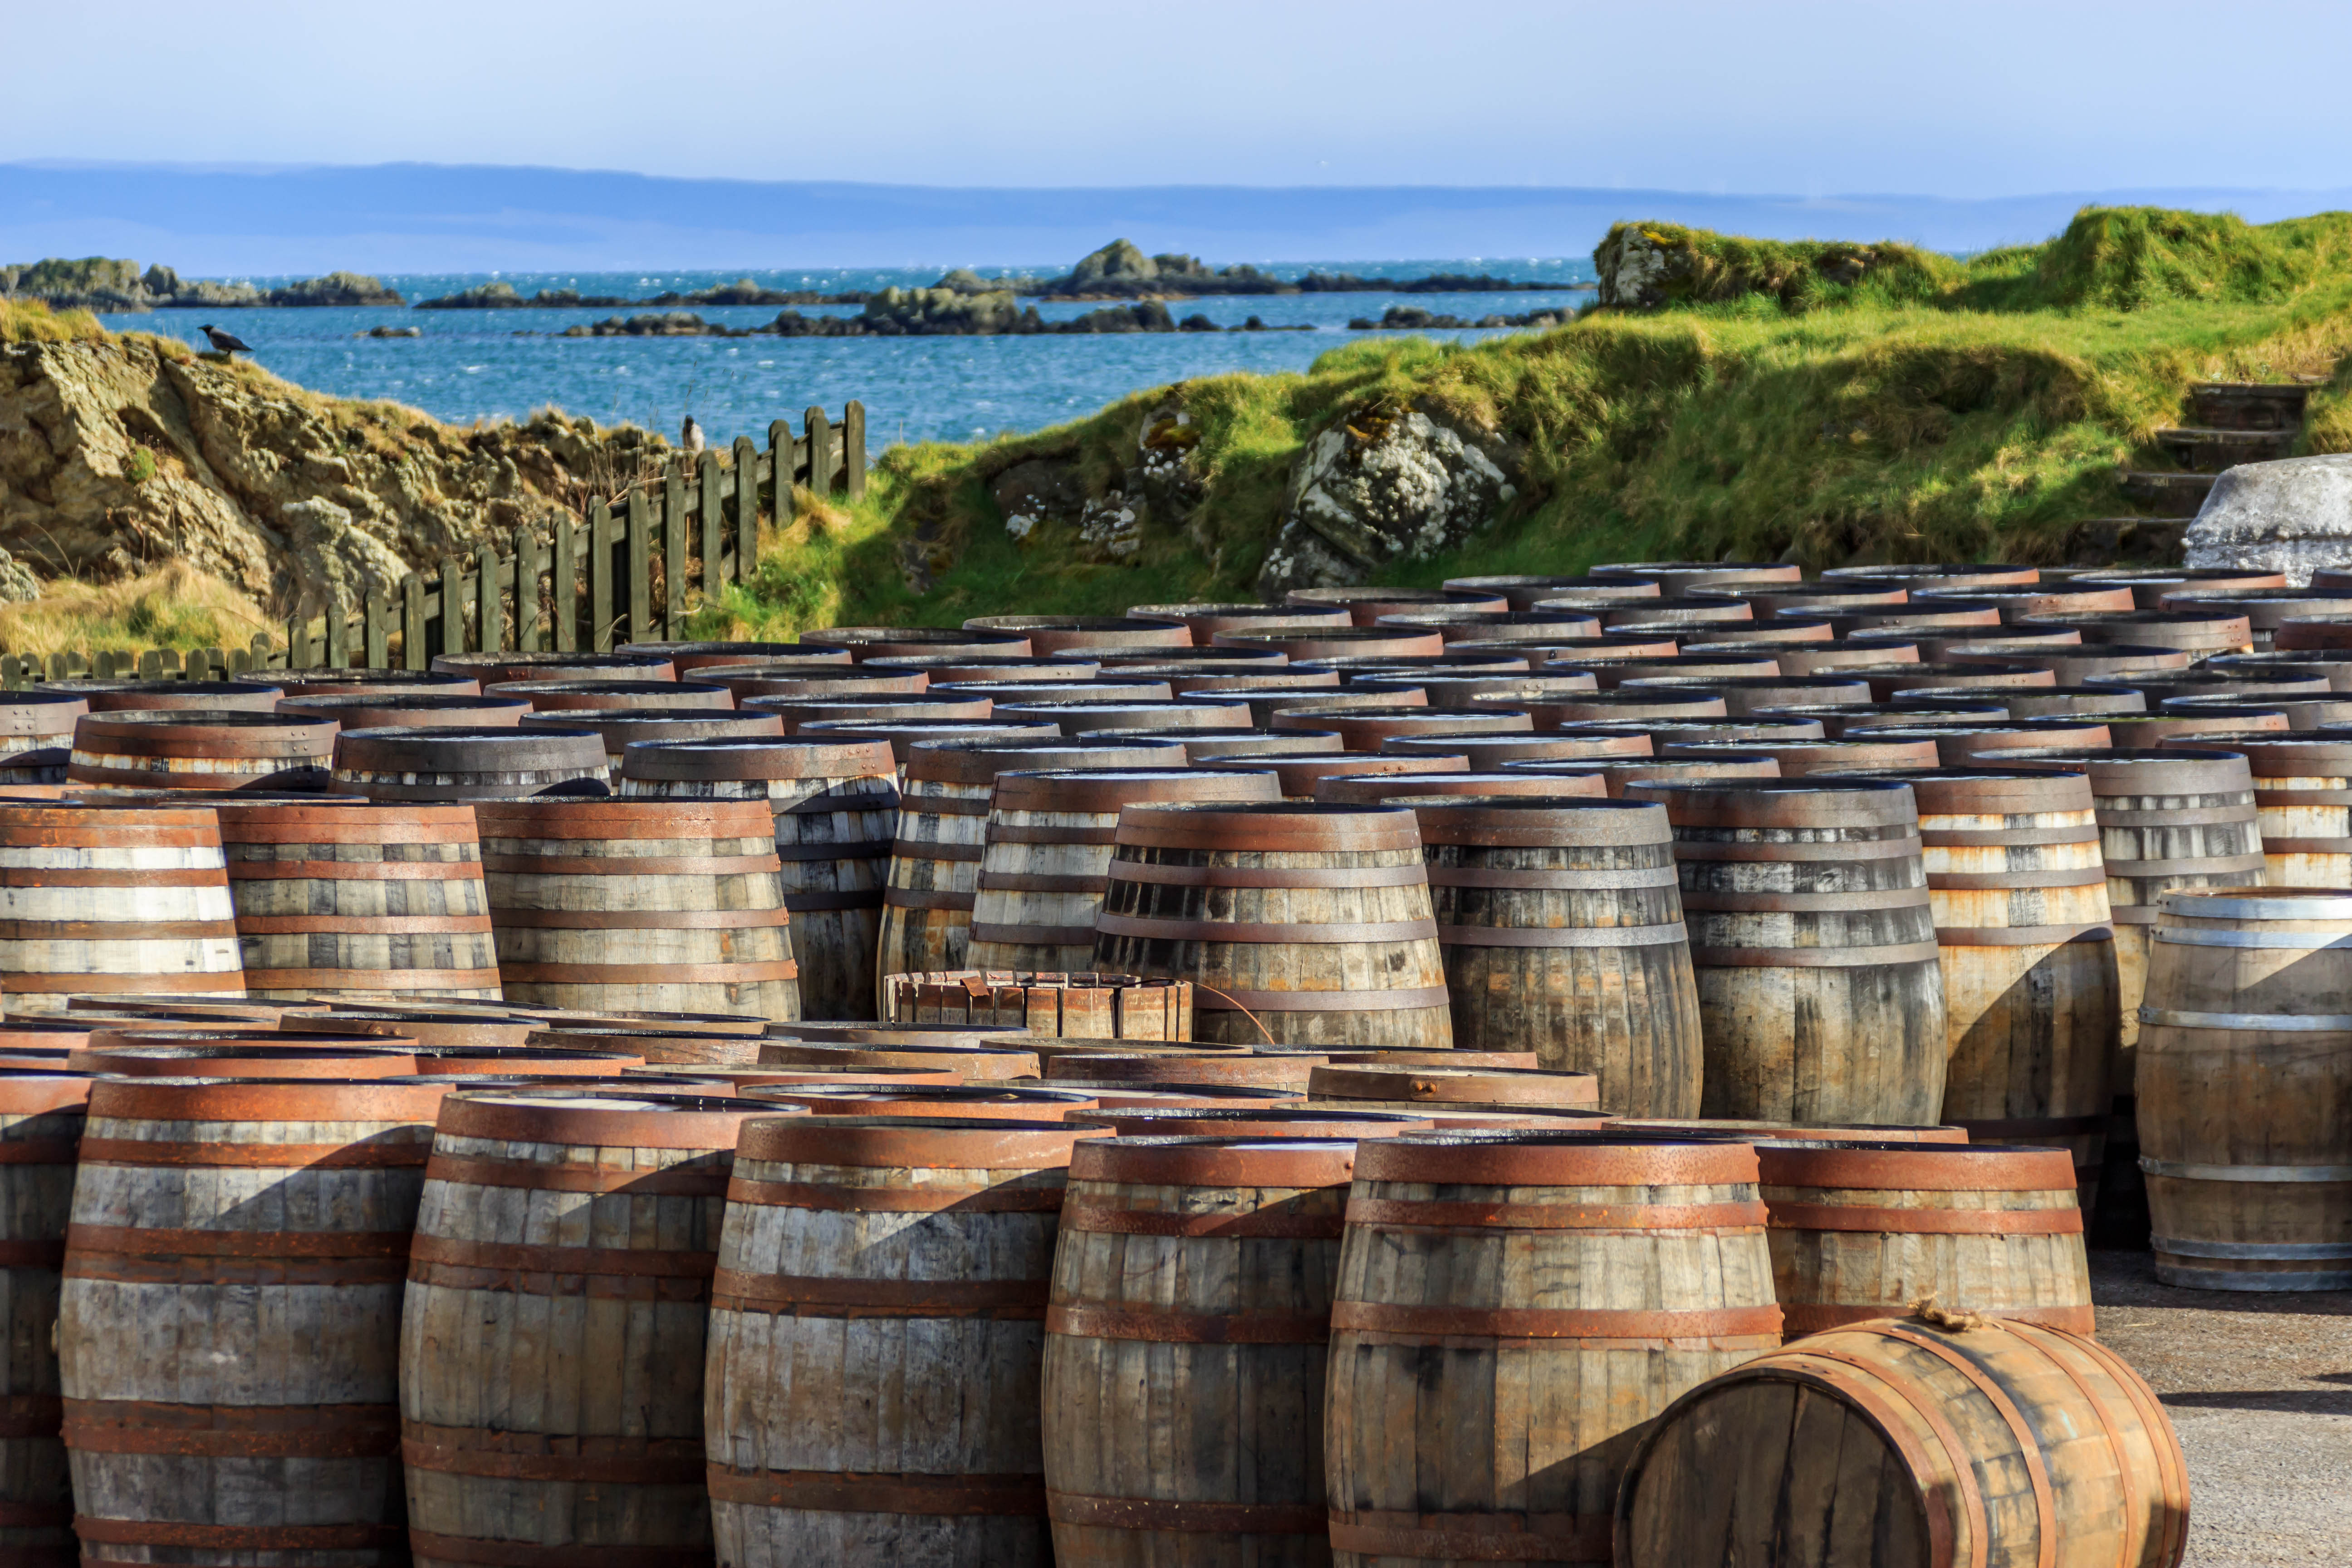 Scotch,Whisky,Barrels,Lined,Up,Seaside,On,The,Island,Of